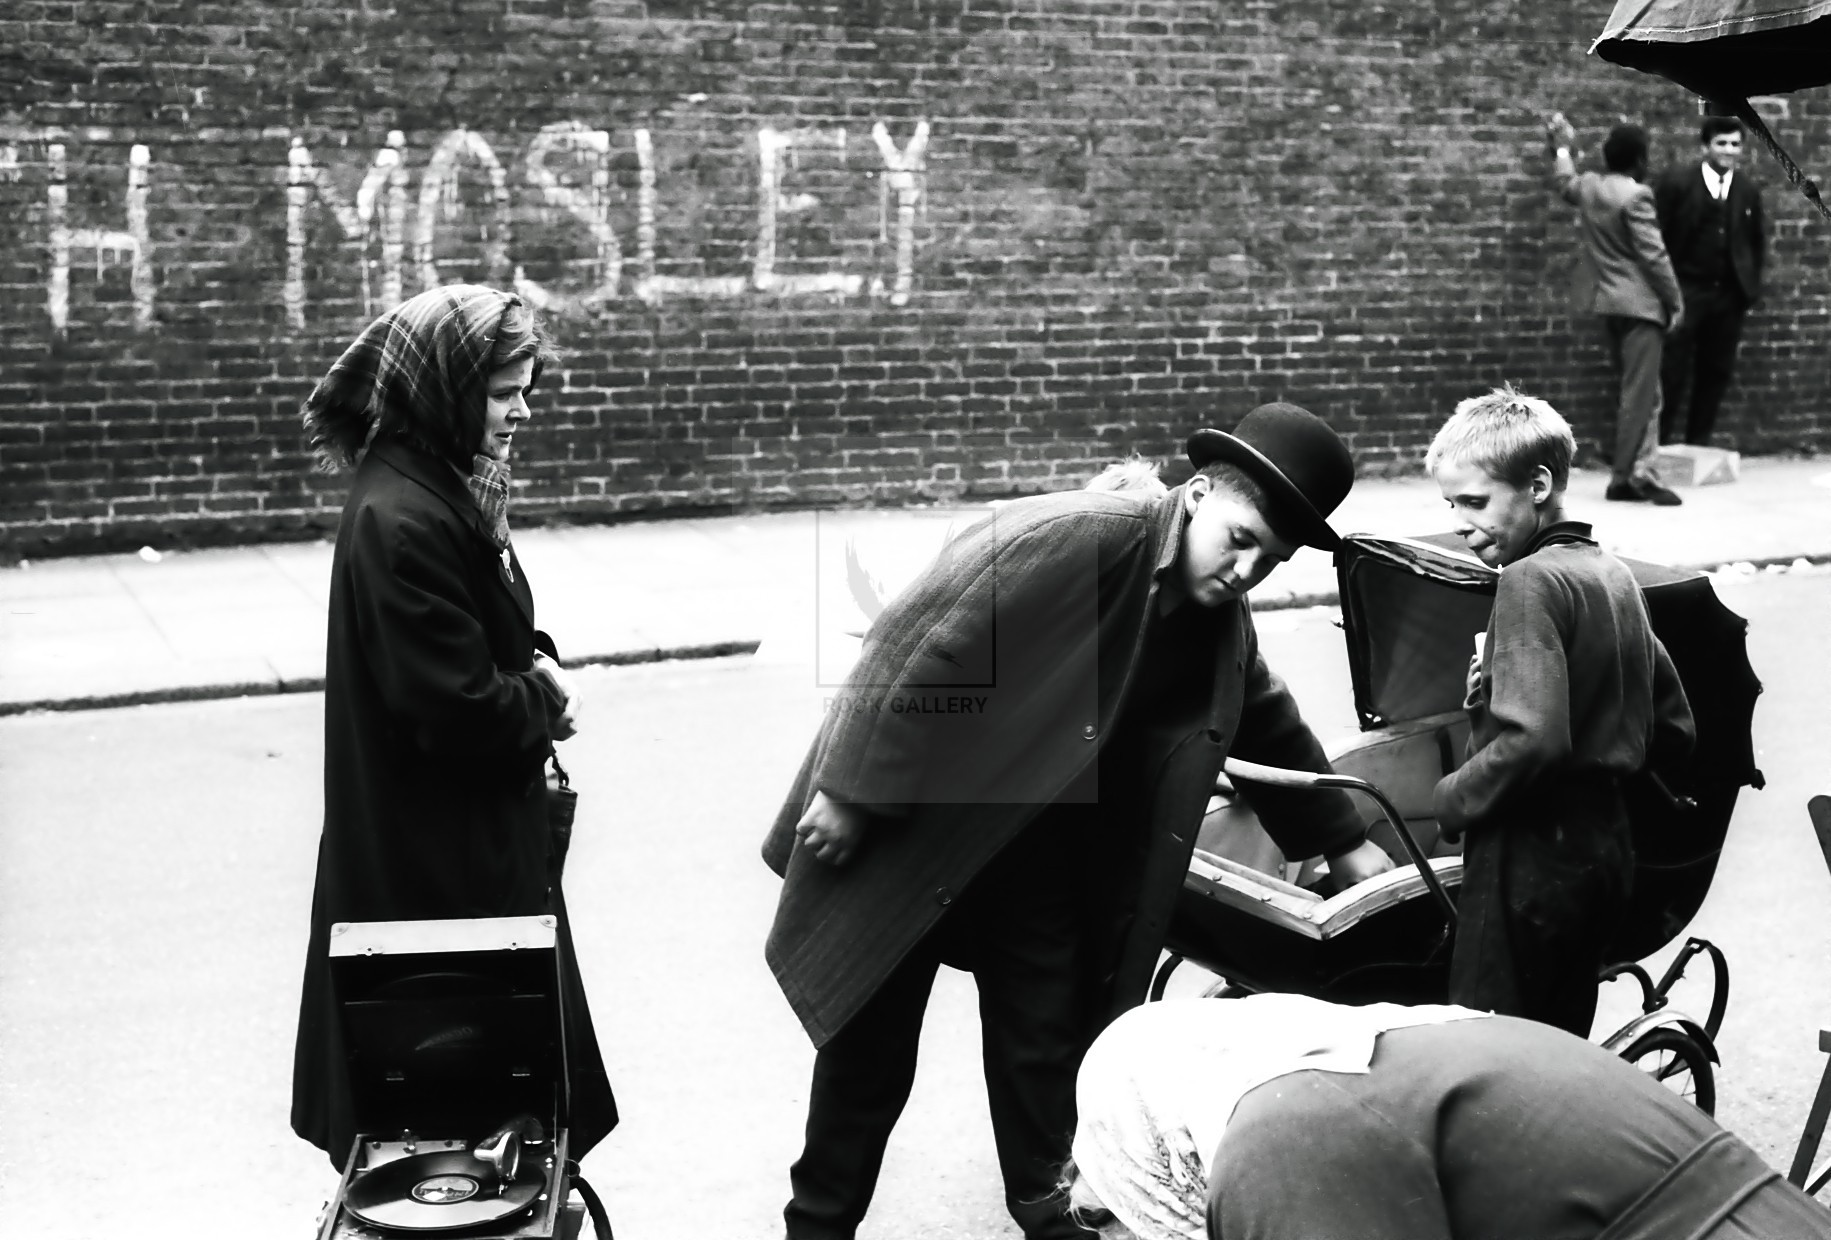 Mosley London graffiti 1950s